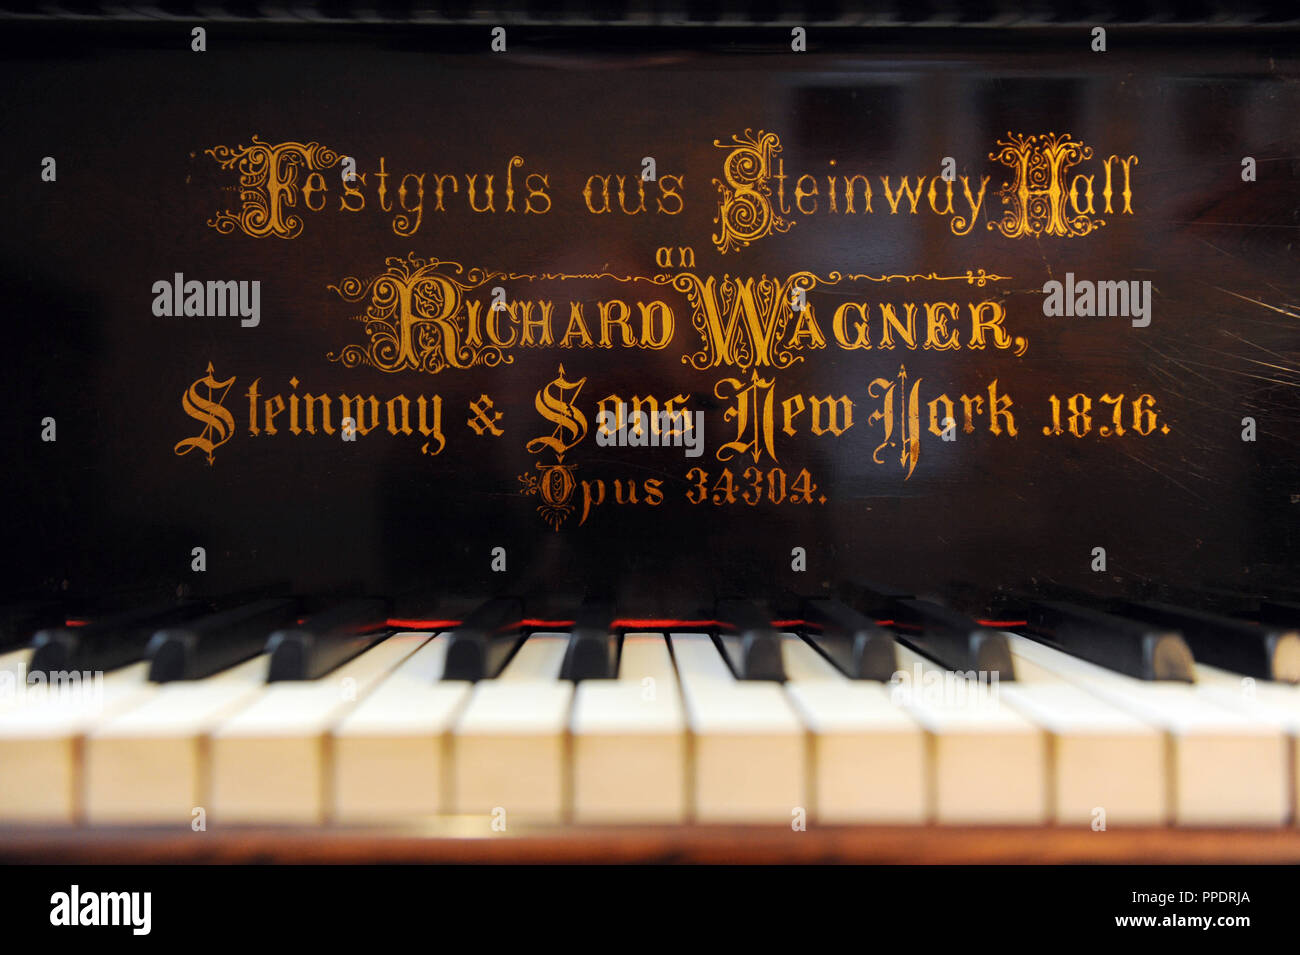 On the occasion of the 200th birthday of Richard Wagner the